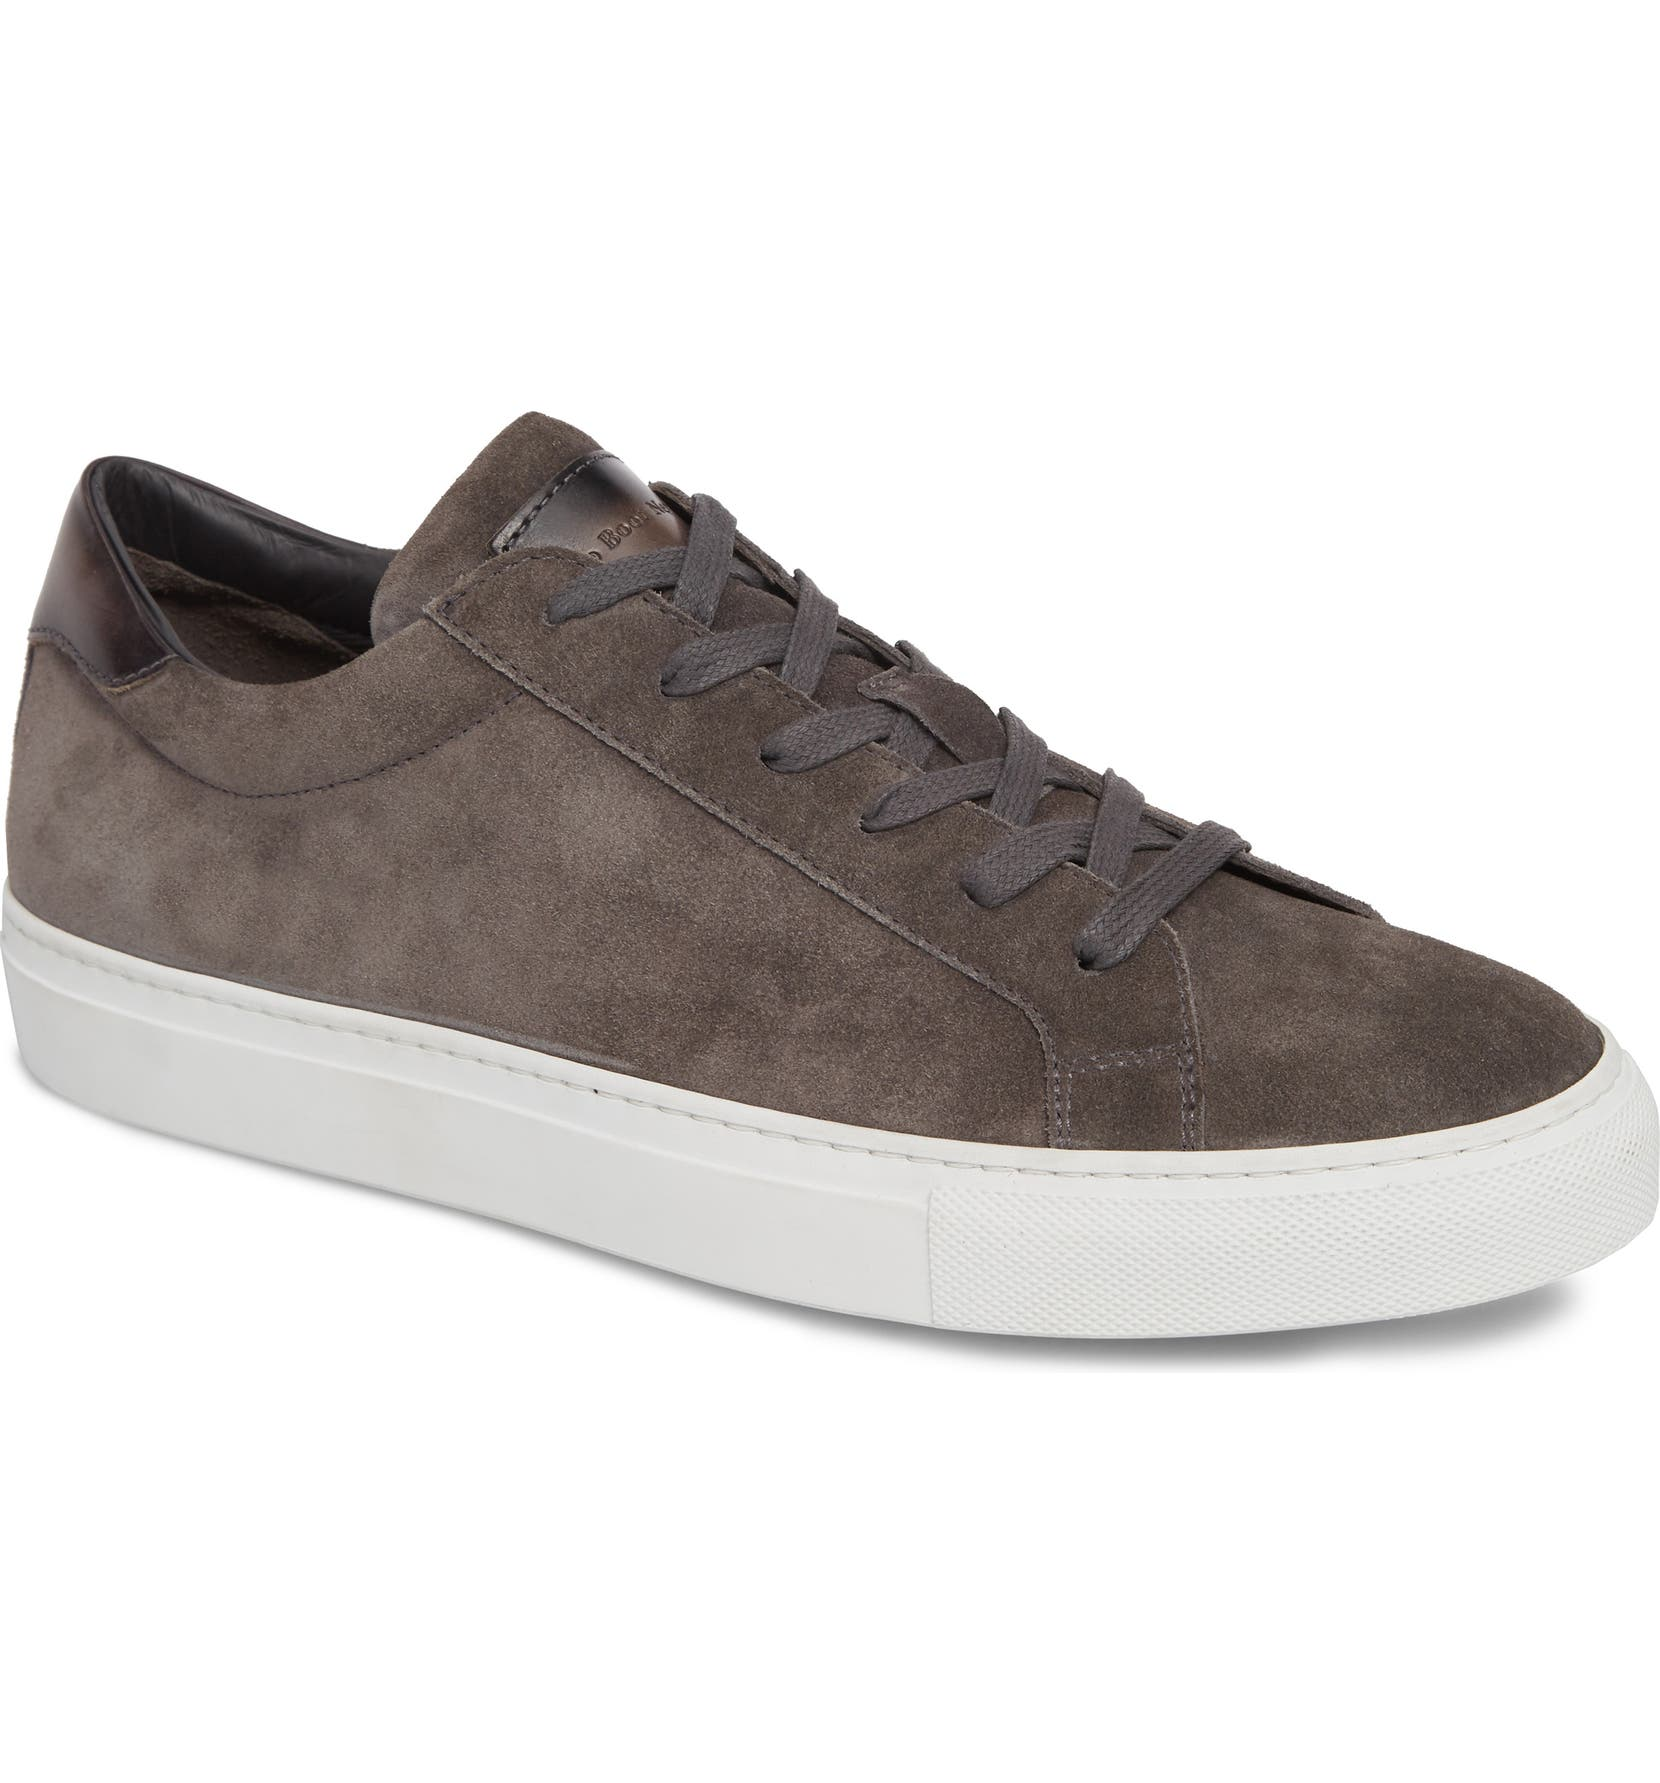 02484493660 Knox Low Top Sneaker